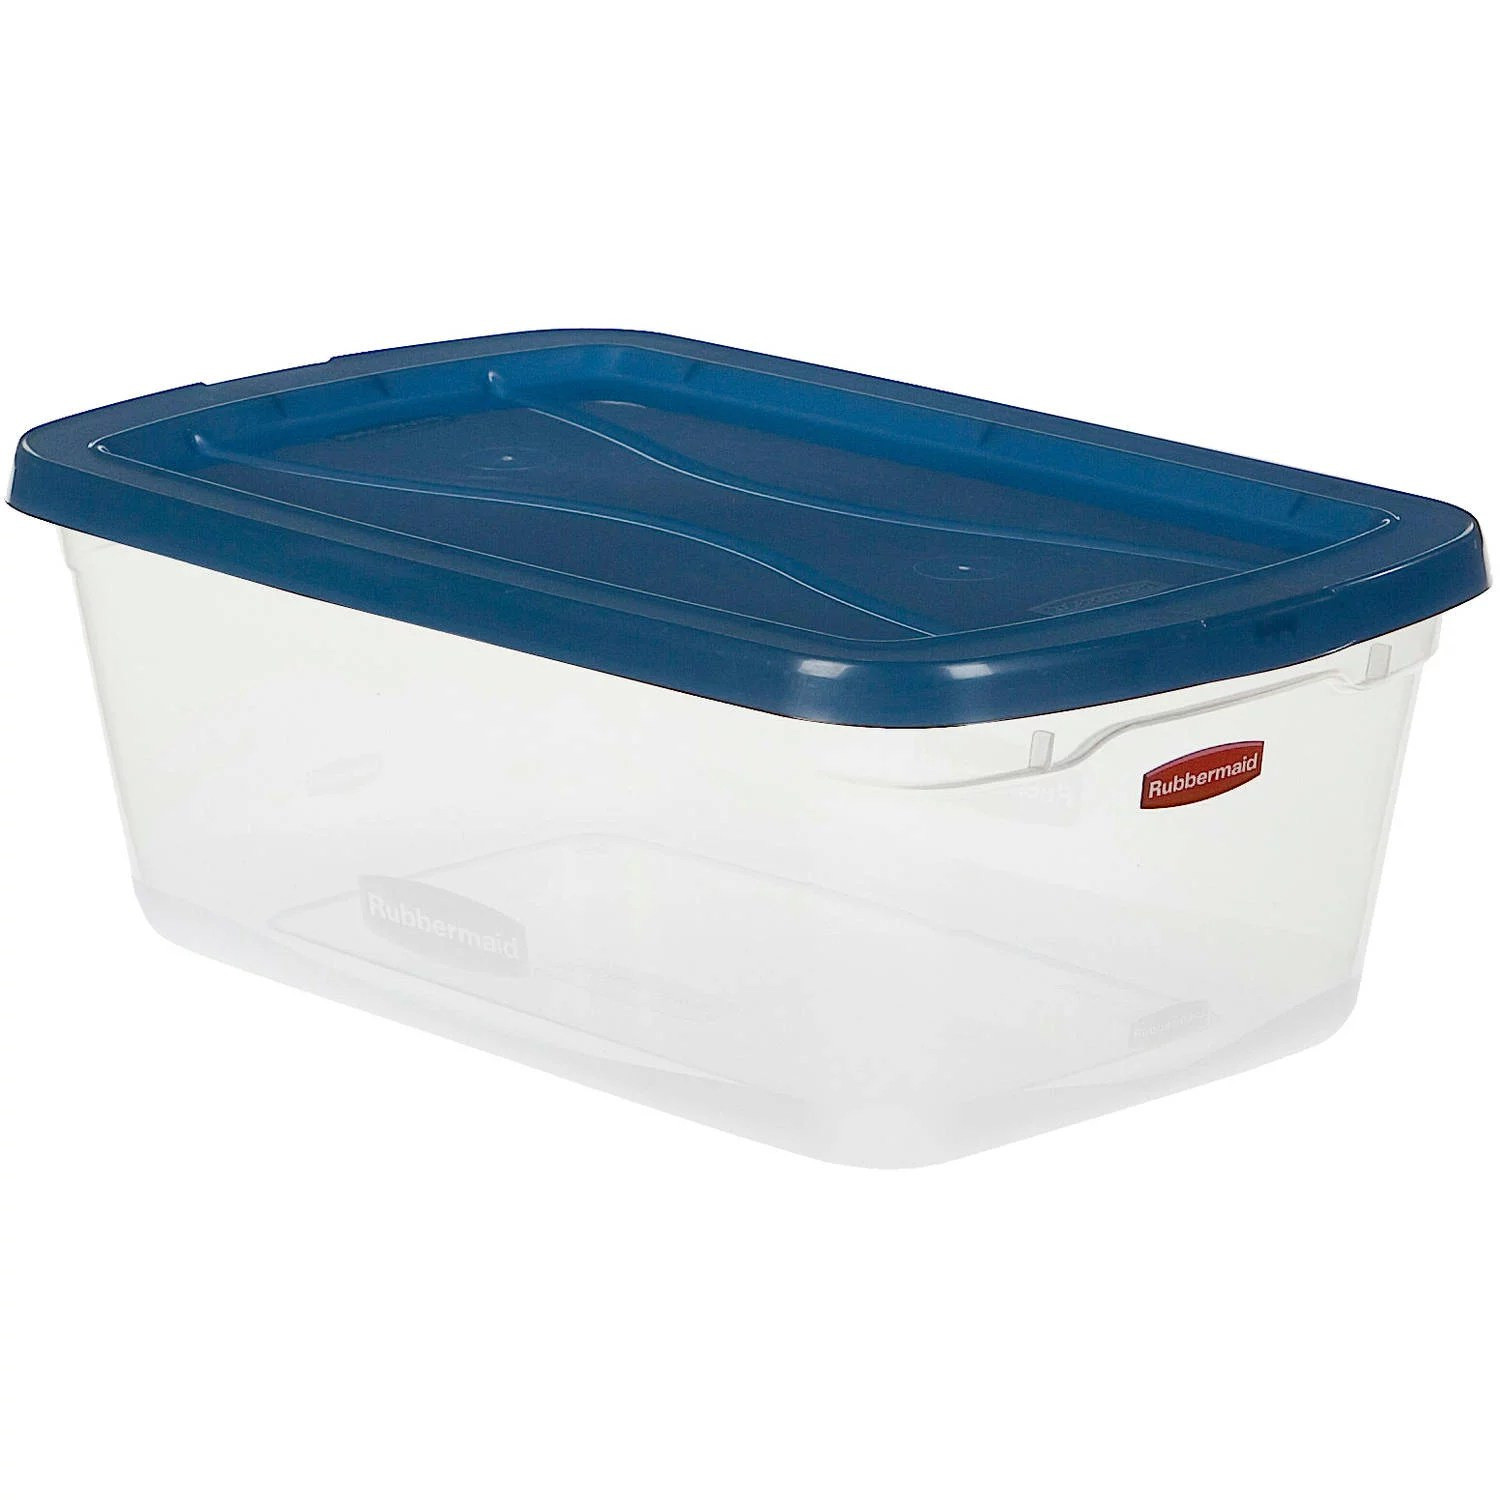 Best Kitchen Gallery: Rubbermaid Clever Store Clears Storage Container 6 5 Qt 10 Pack of Plastic Storage Containers By Size on rachelxblog.com